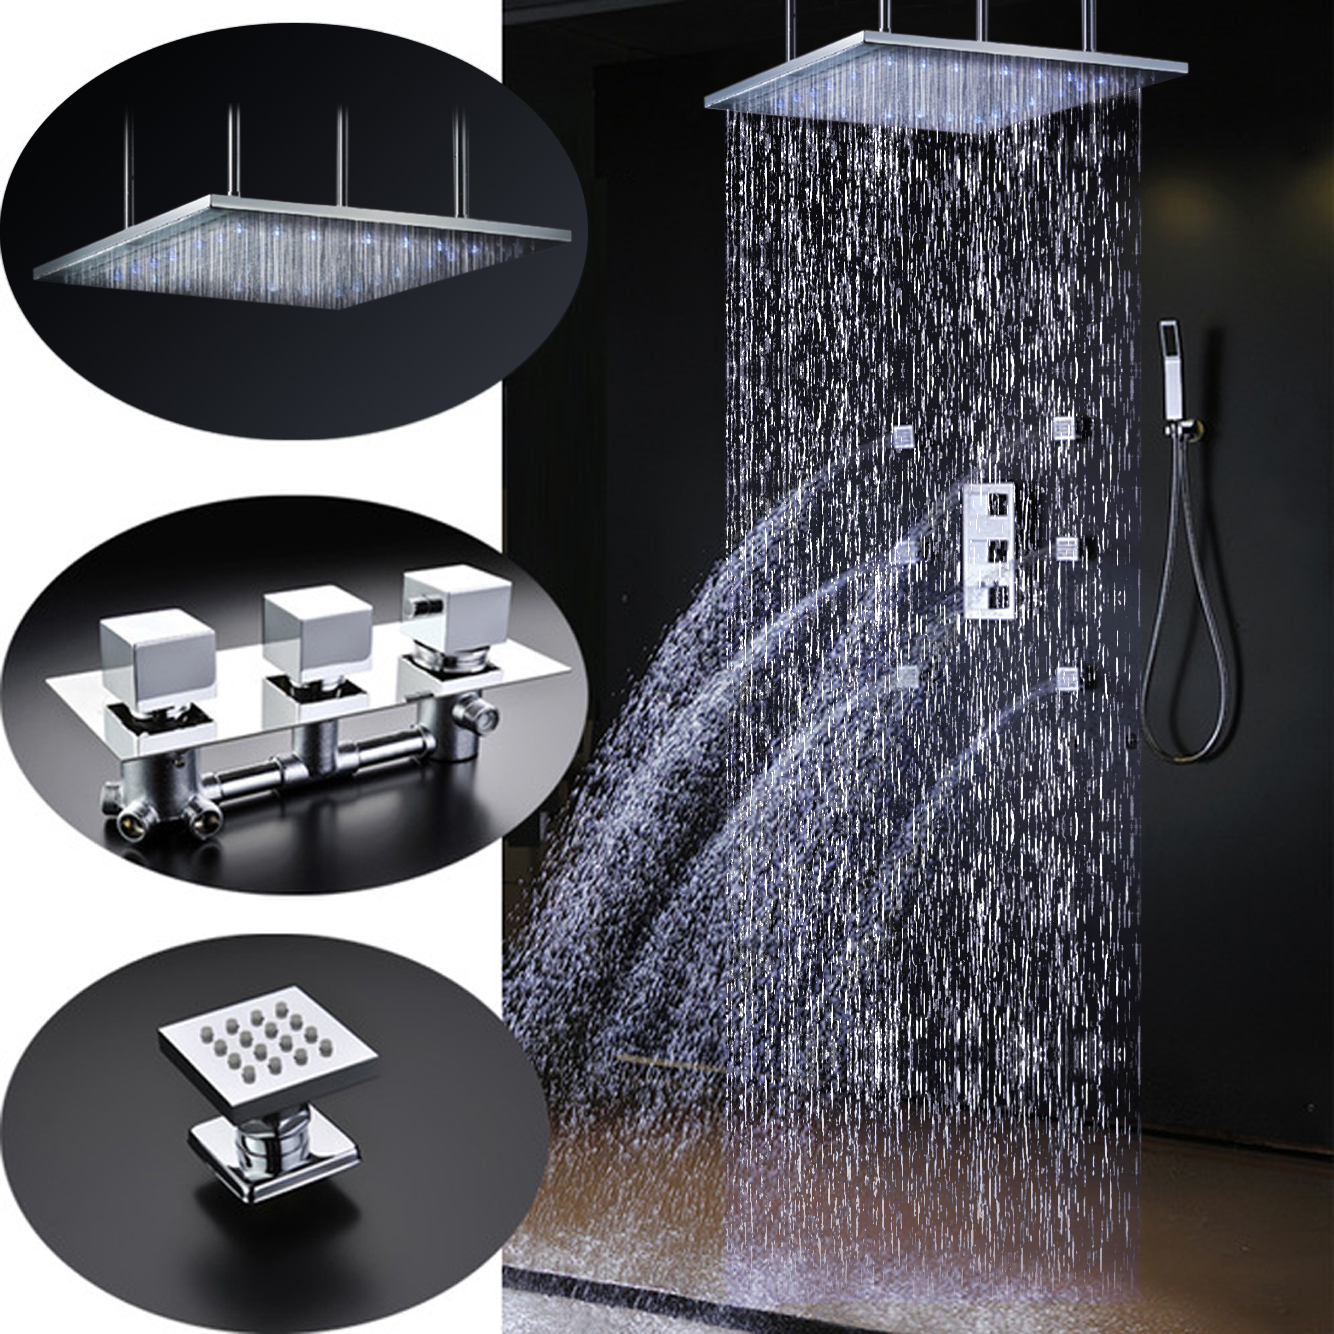 Sicily 40 Large Chrome Led Rain Shower Head With Jets